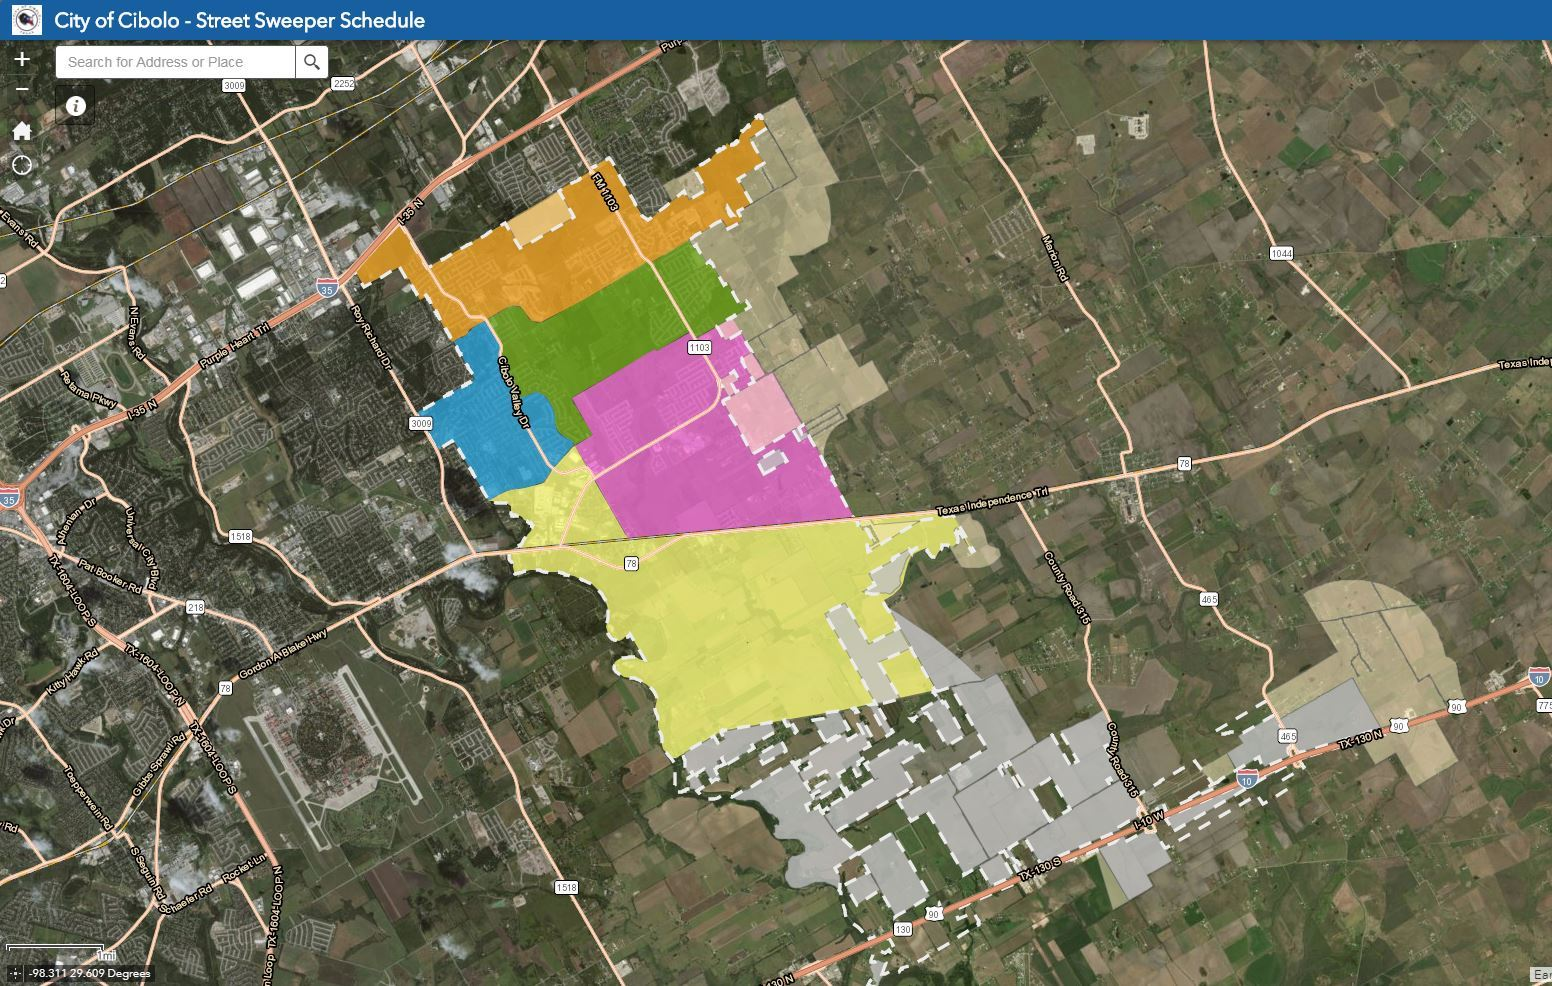 GIS Mapping & Information | Cibolo, TX - Official Website on